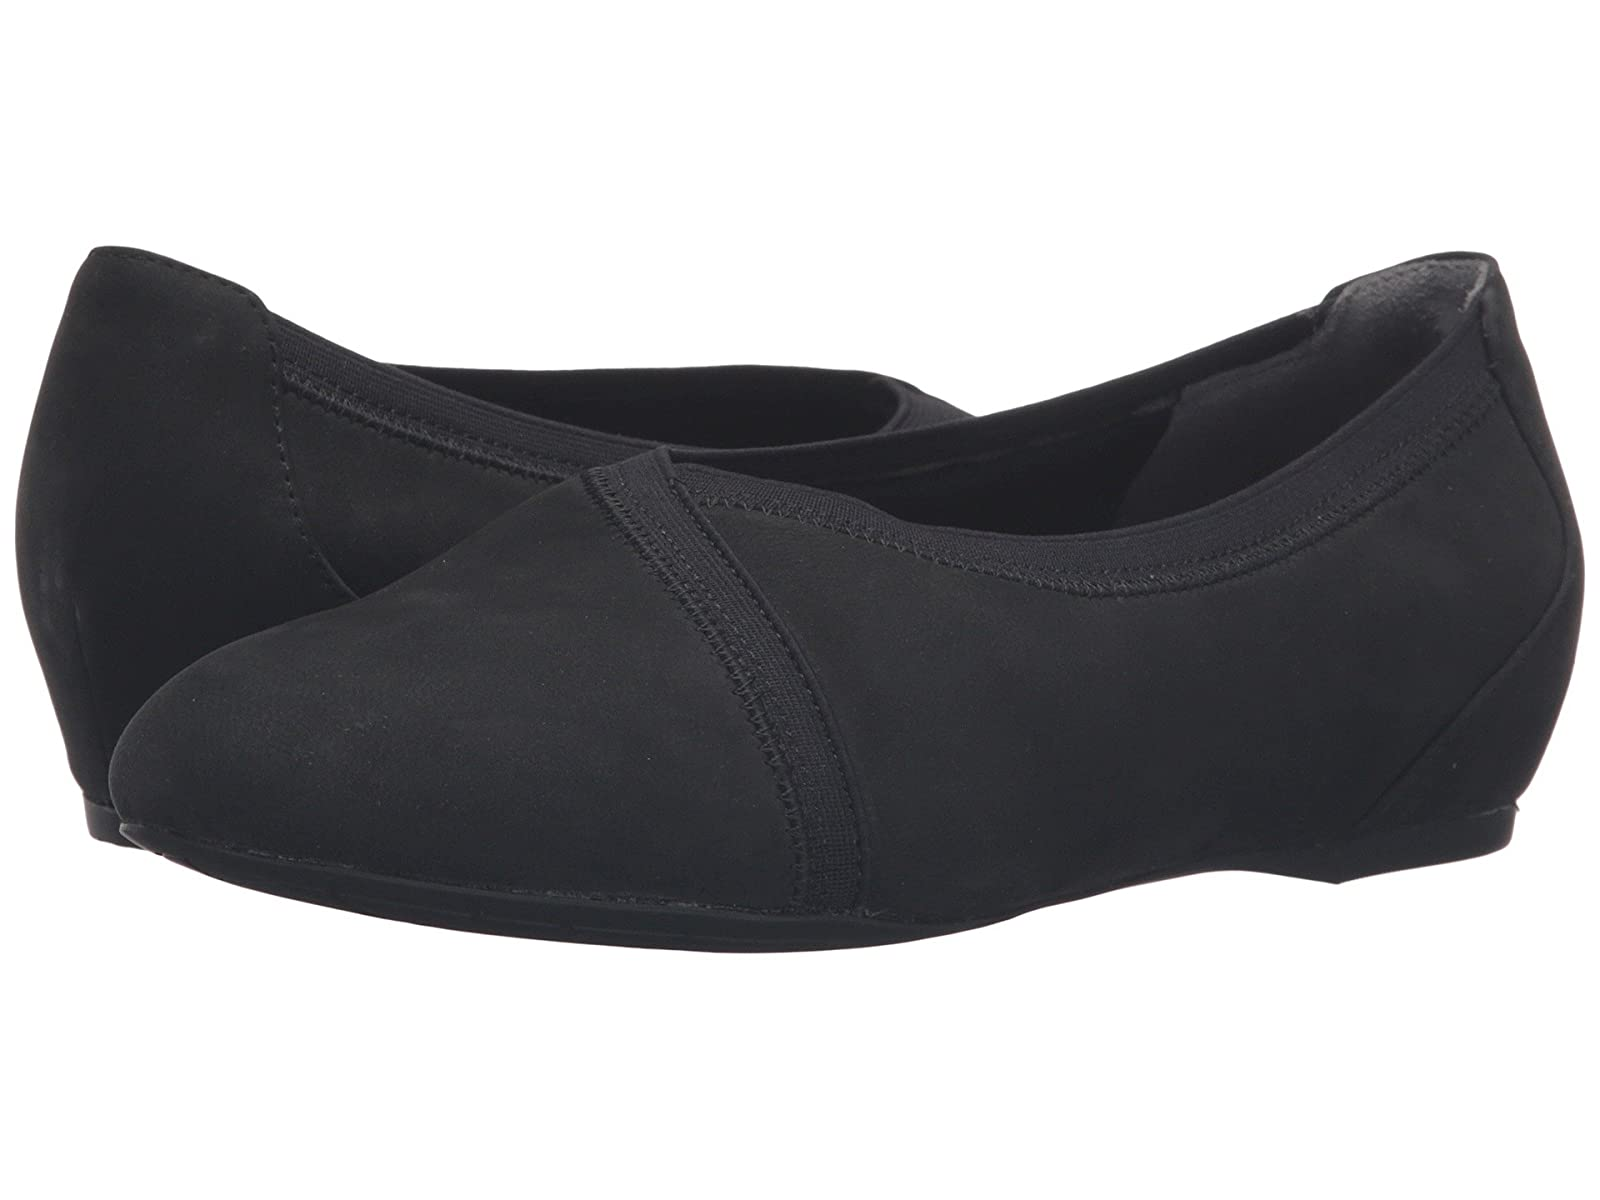 Rockport Total Motion Envelope FlatCheap and distinctive eye-catching shoes